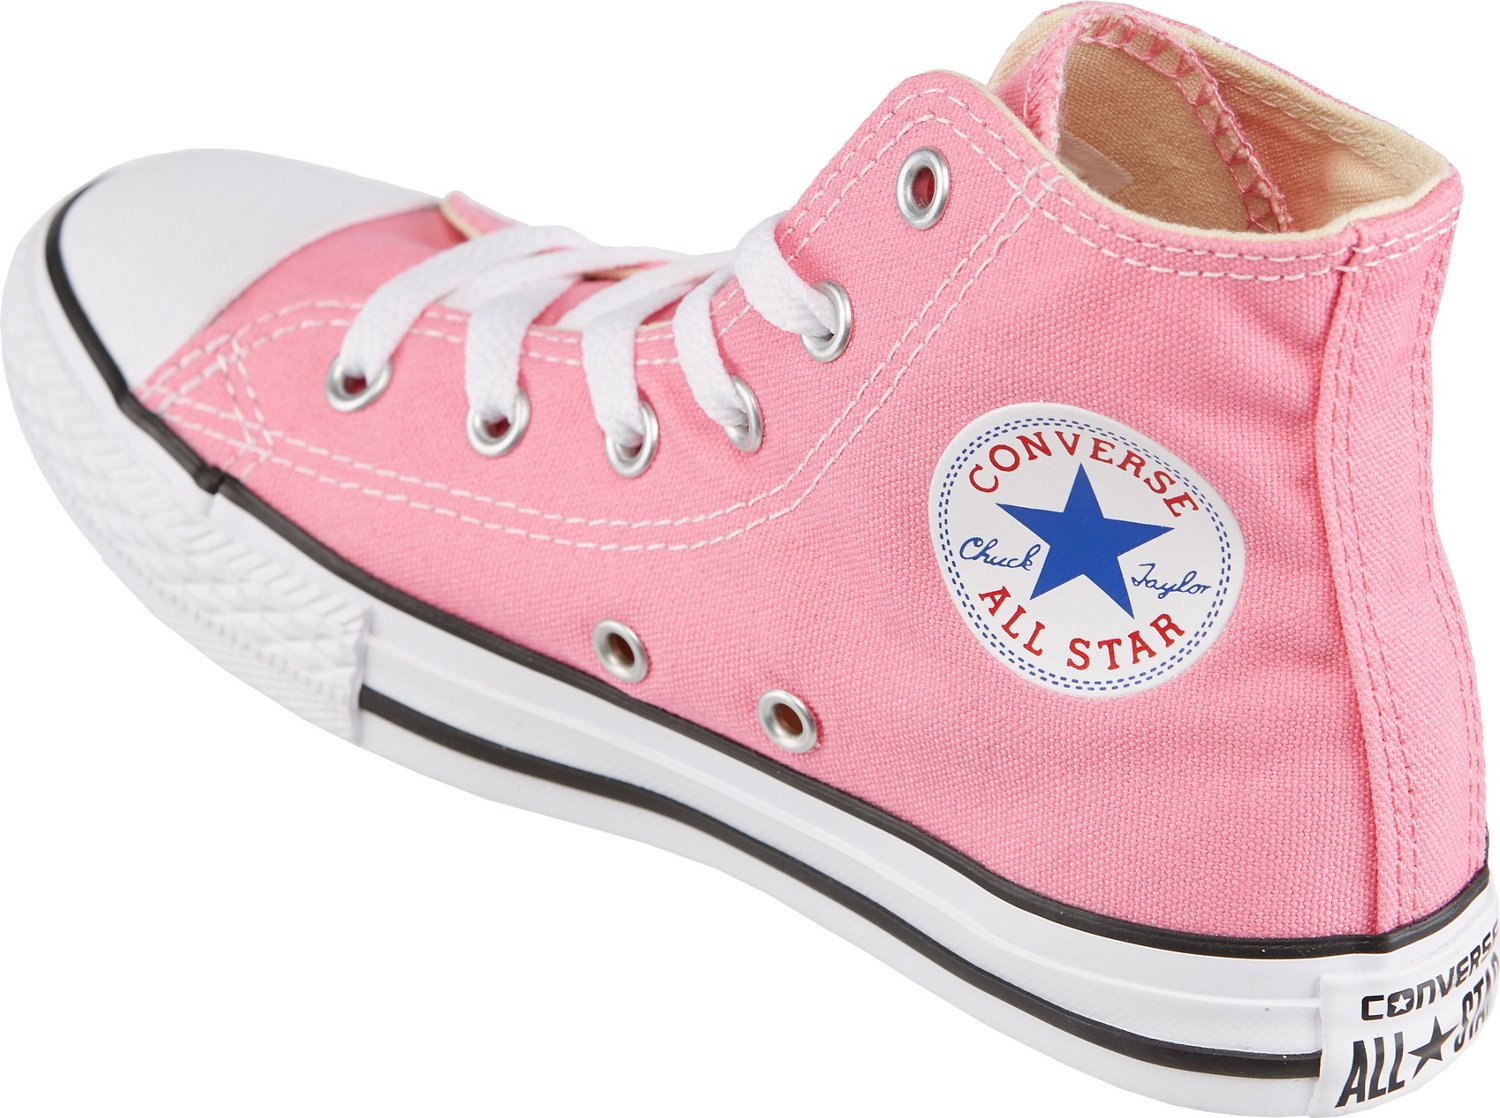 Converse Toddler Girls' Chuck Taylor All Star Shoes - view number 1